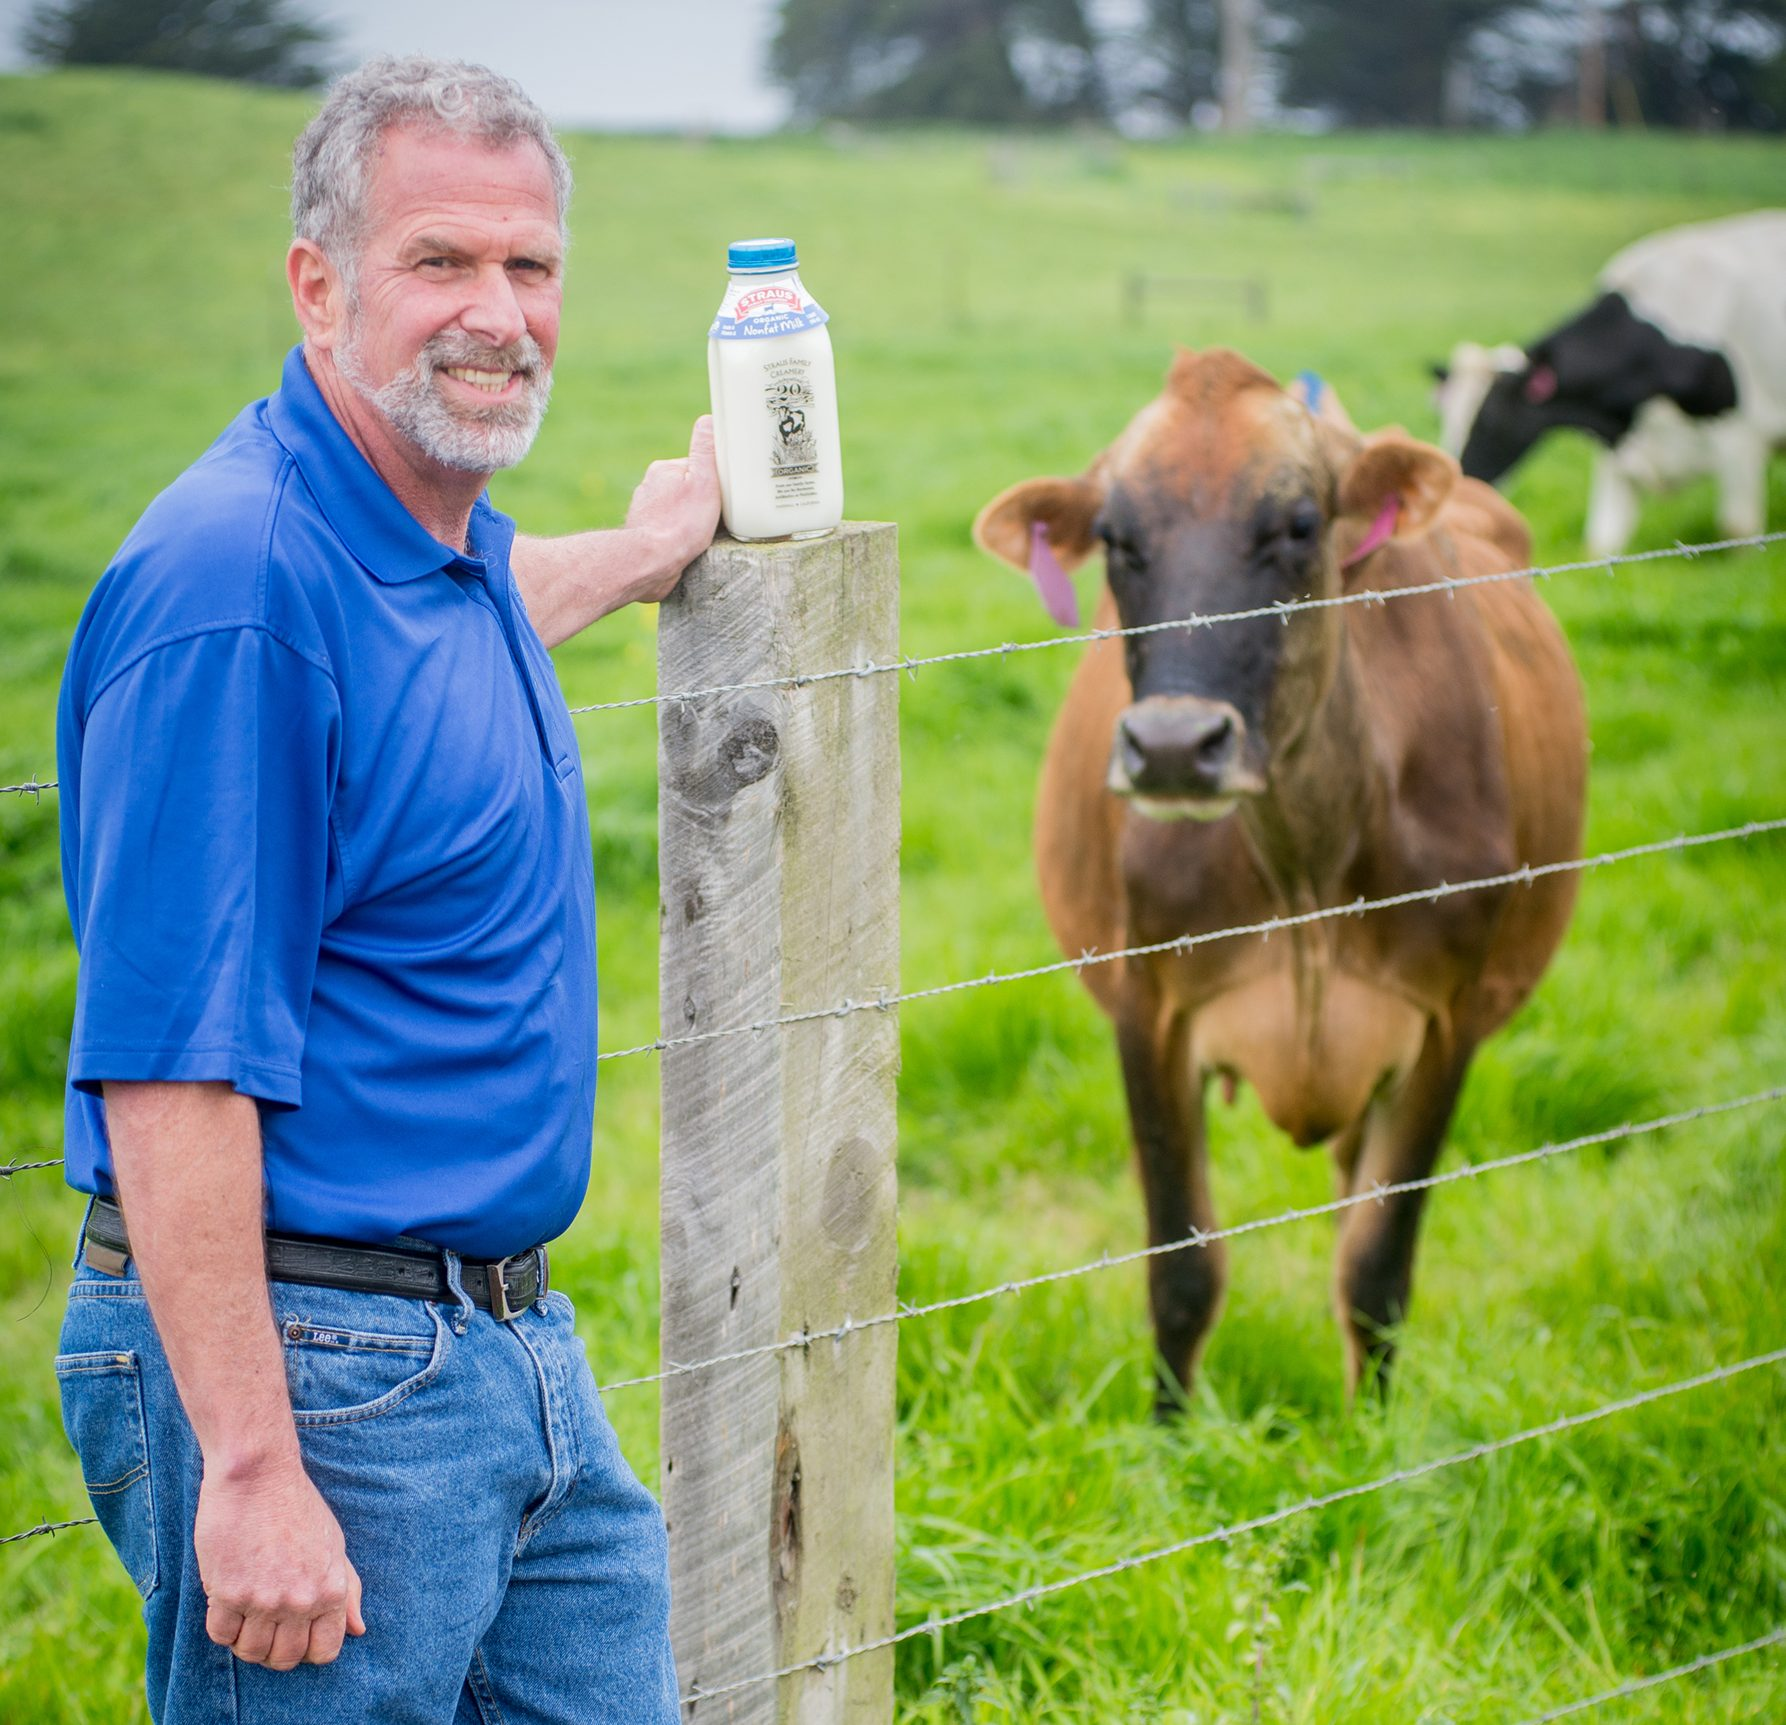 This Dairy Farm Runs on Cow Poop (So Does Its New Feed Truck)